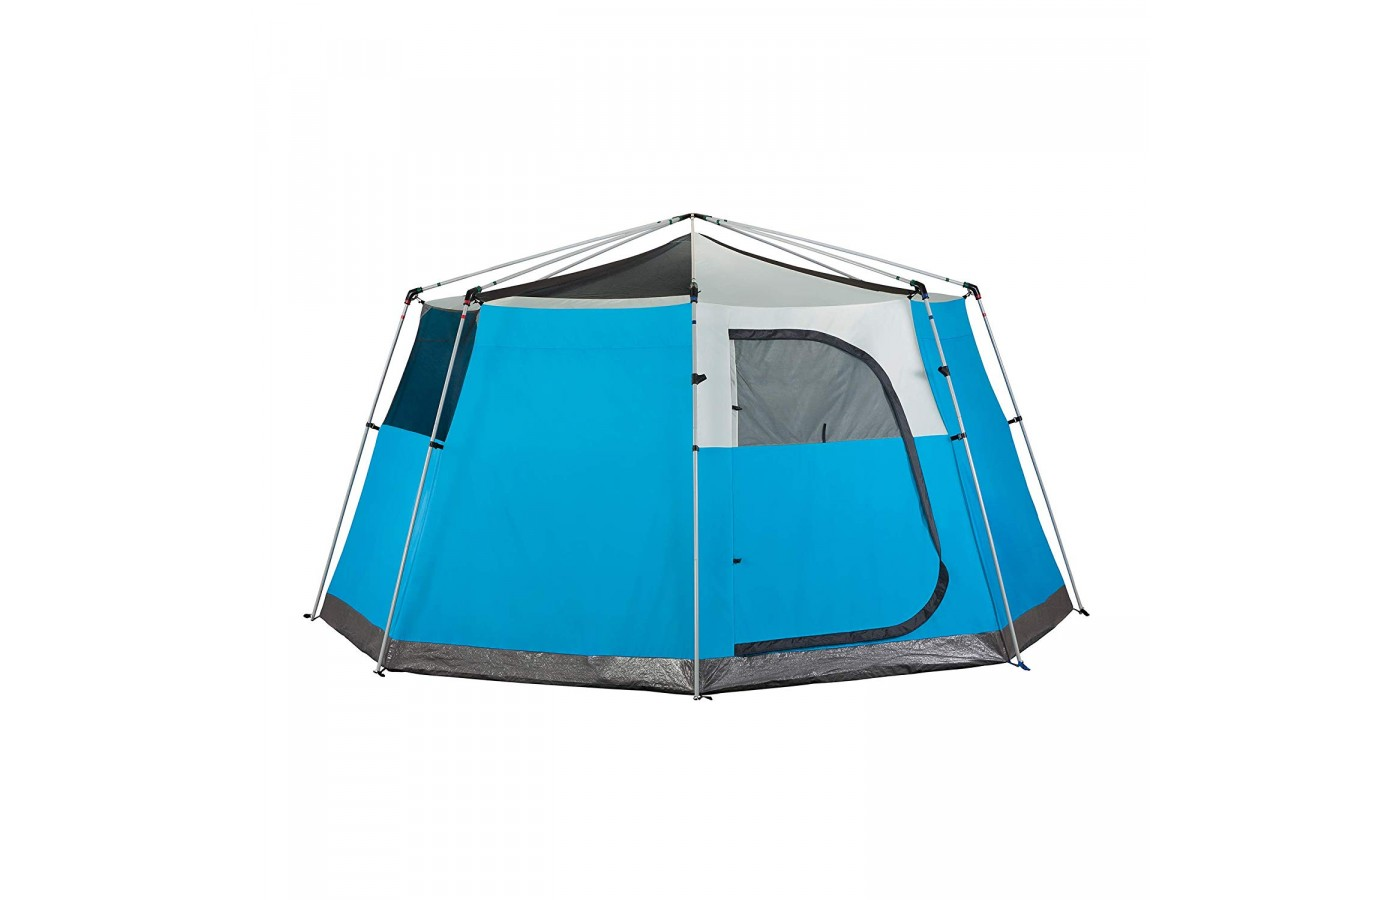 The Coleman Cortes Octagon 8 has an optional hood removable cover to enjoy the sun during the day.